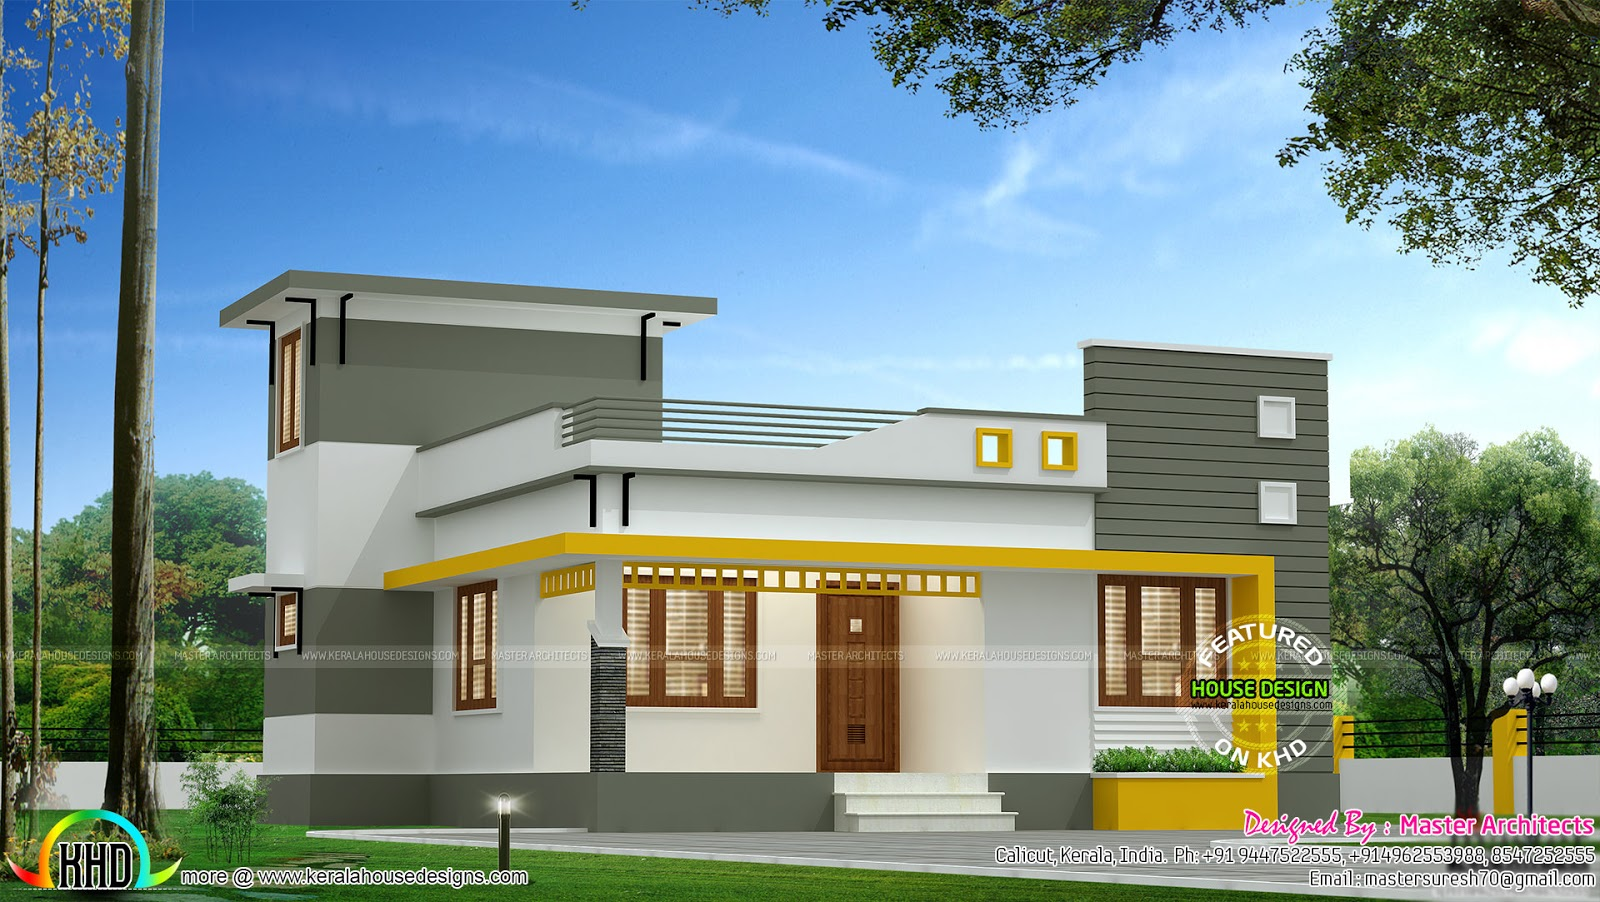 3 bedroom single floor modern architecture home kerala for One floor contemporary house design